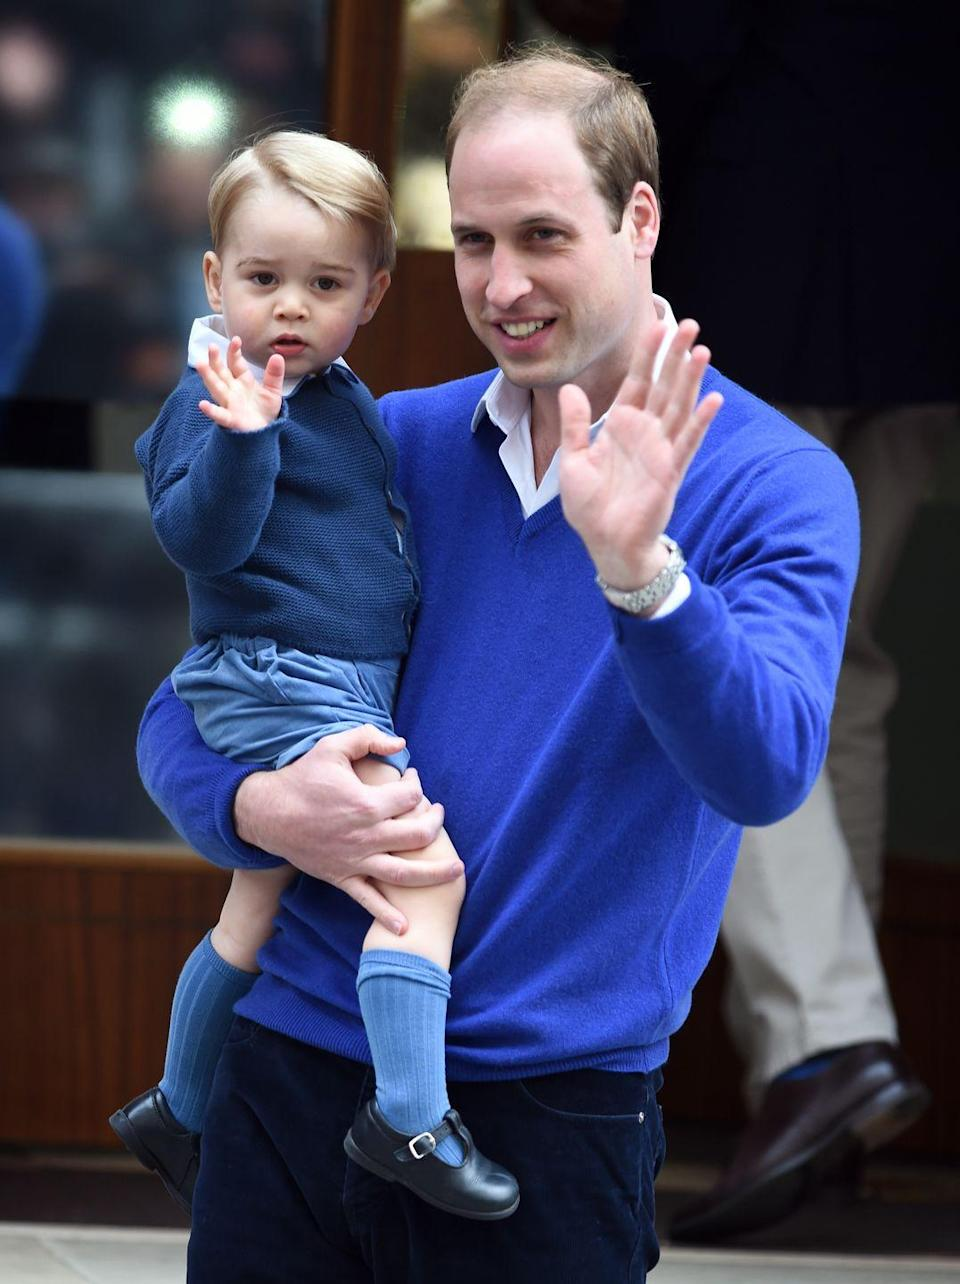 <p>Look - matching outfits and everything.</p>